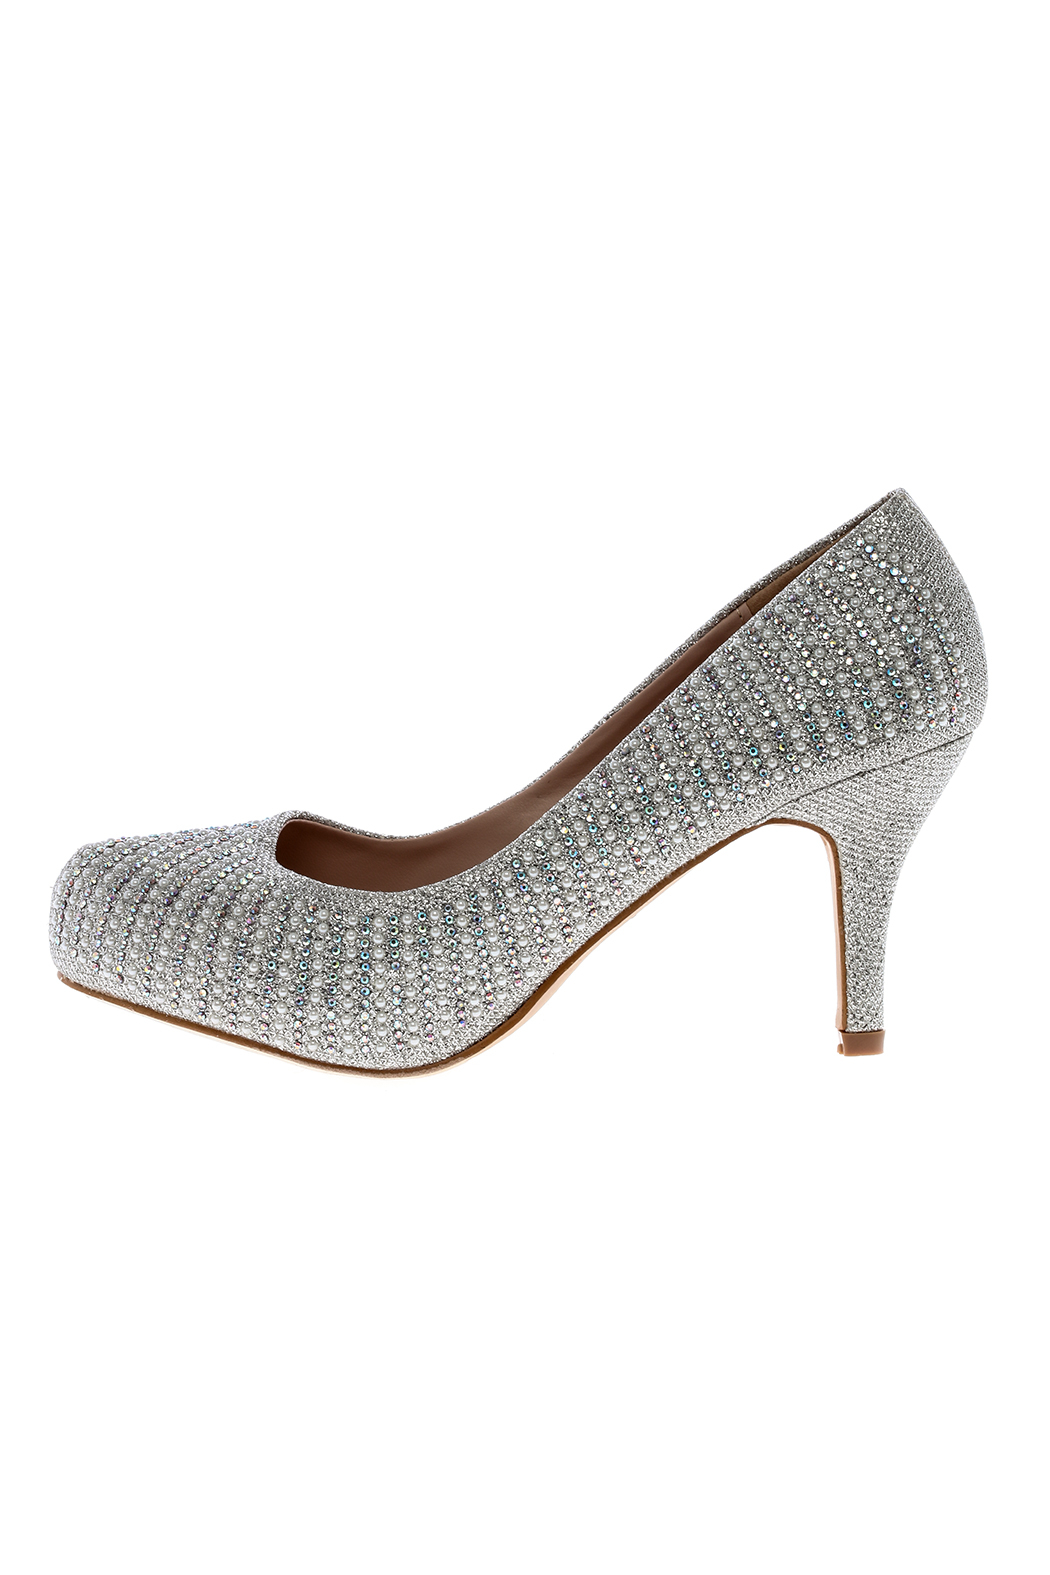 Bella Luna by Springland Footwear Round Silver Pump - Front Full Image